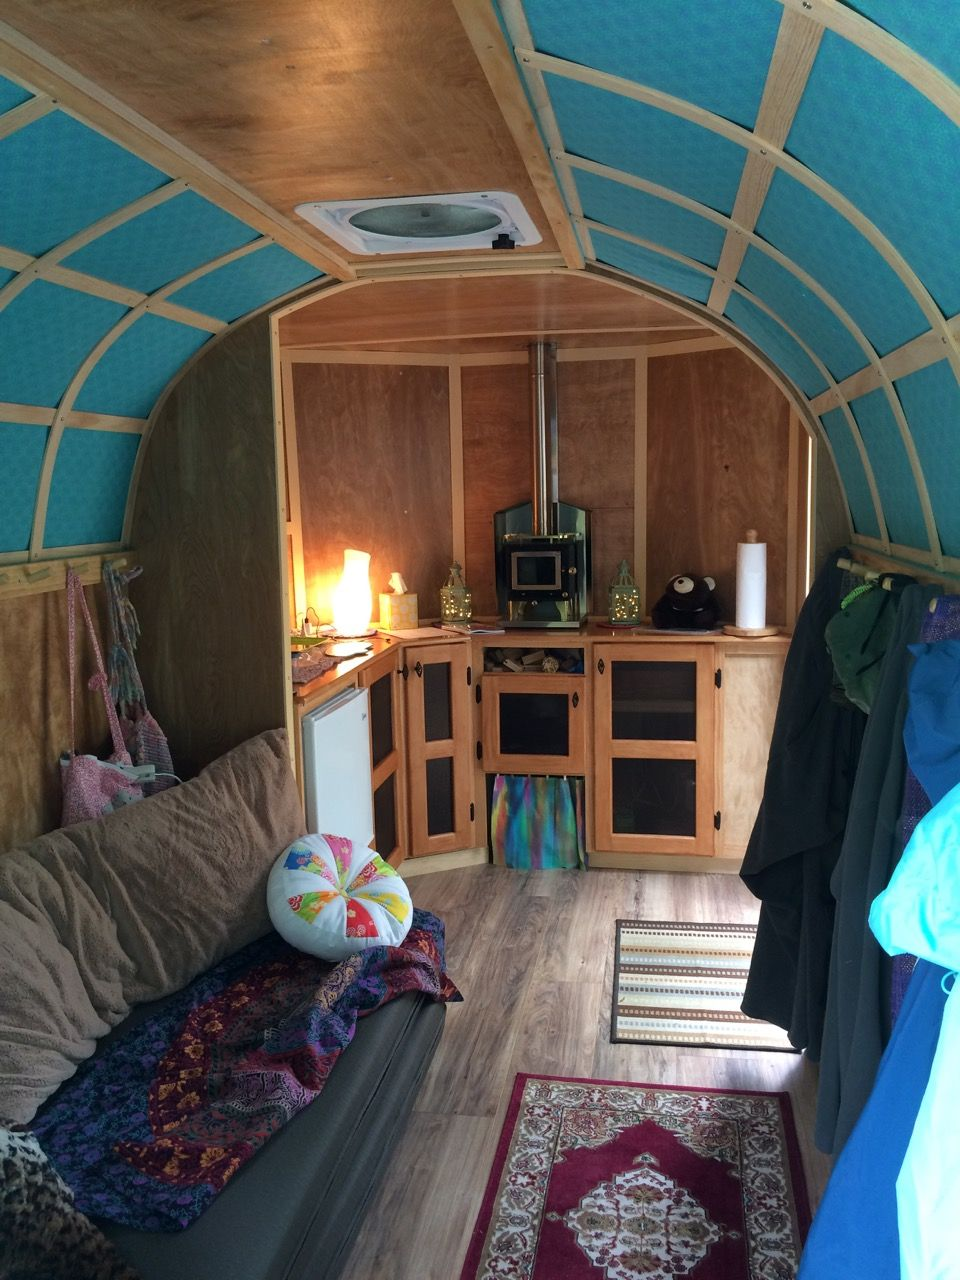 6x12 cargo trailer camper conversion couch on left opens into a